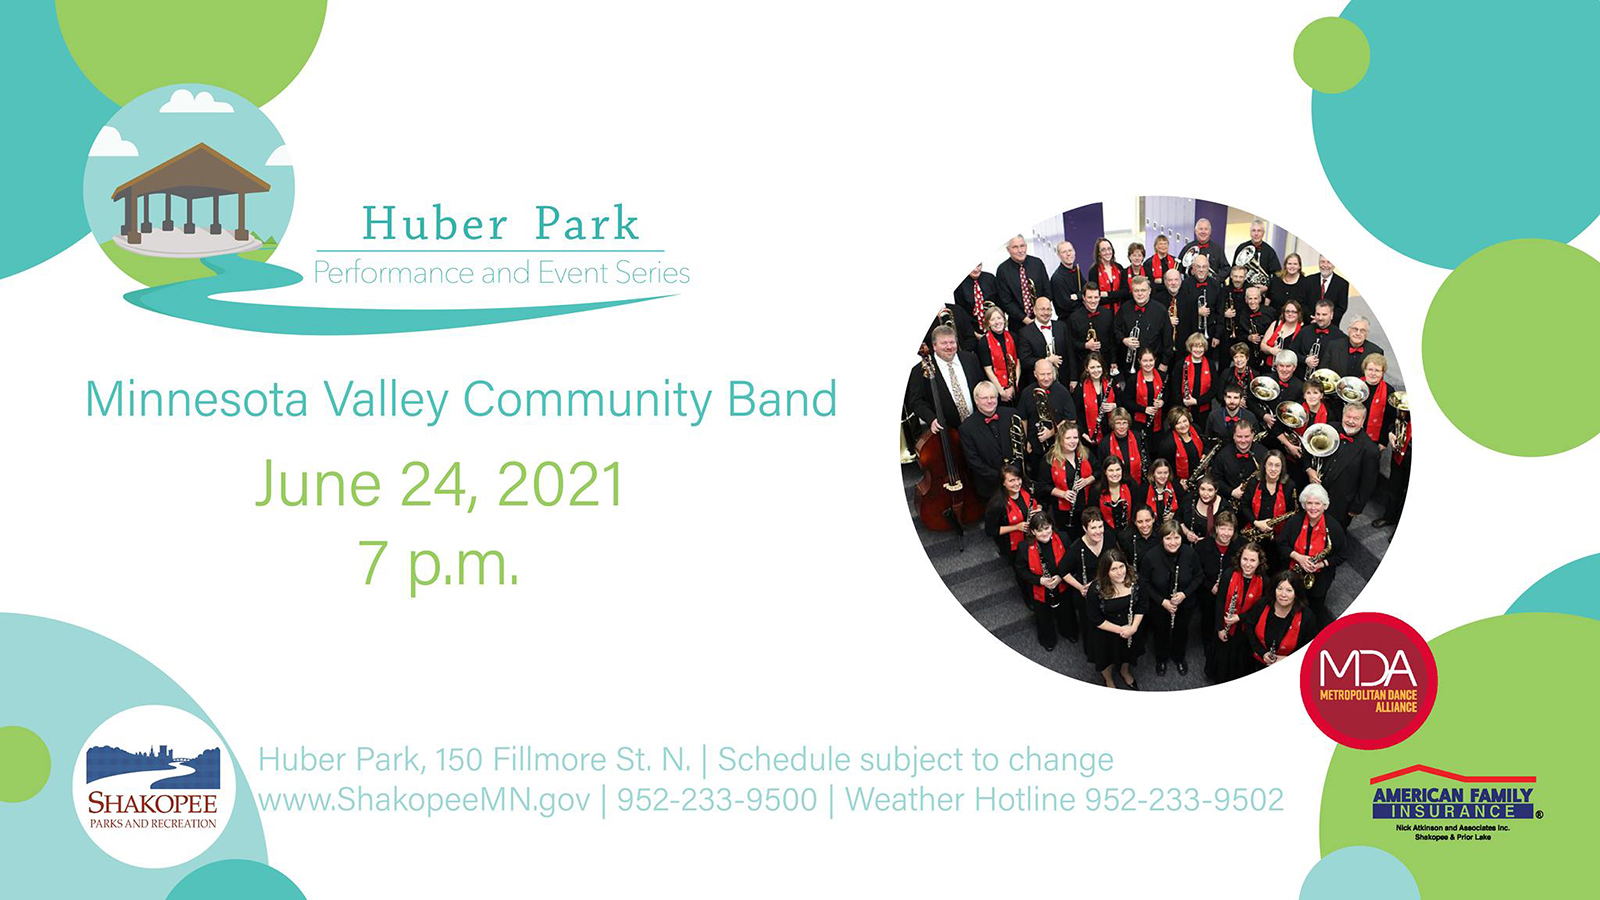 Minnesota Valley Community Band: Huber Park and Event Series